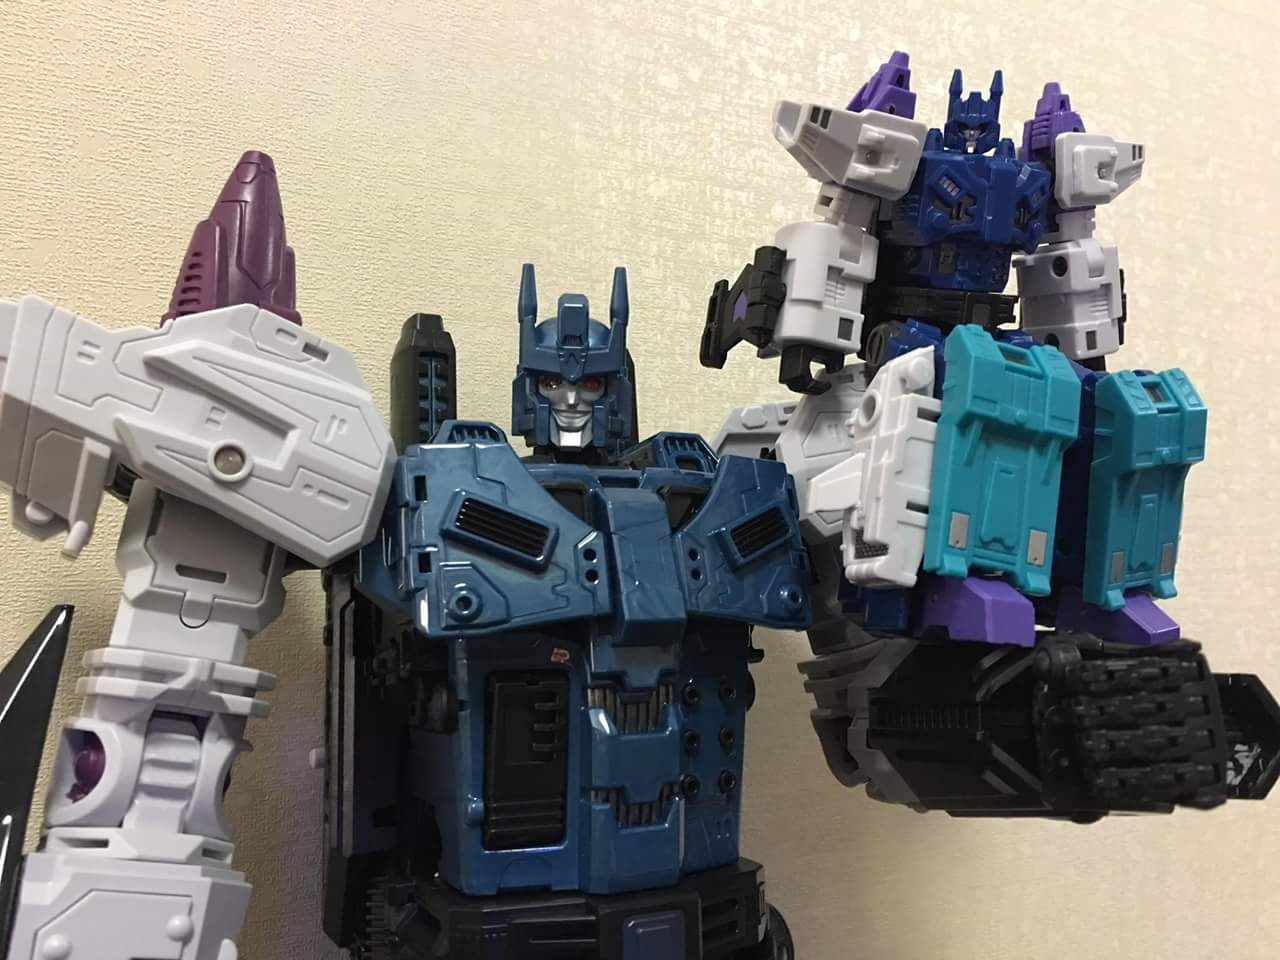 [Mastermind Creations] Produit Tiers - R-17 Carnifex - aka Overlord (TF Masterforce) - Page 3 M9s8hj9m